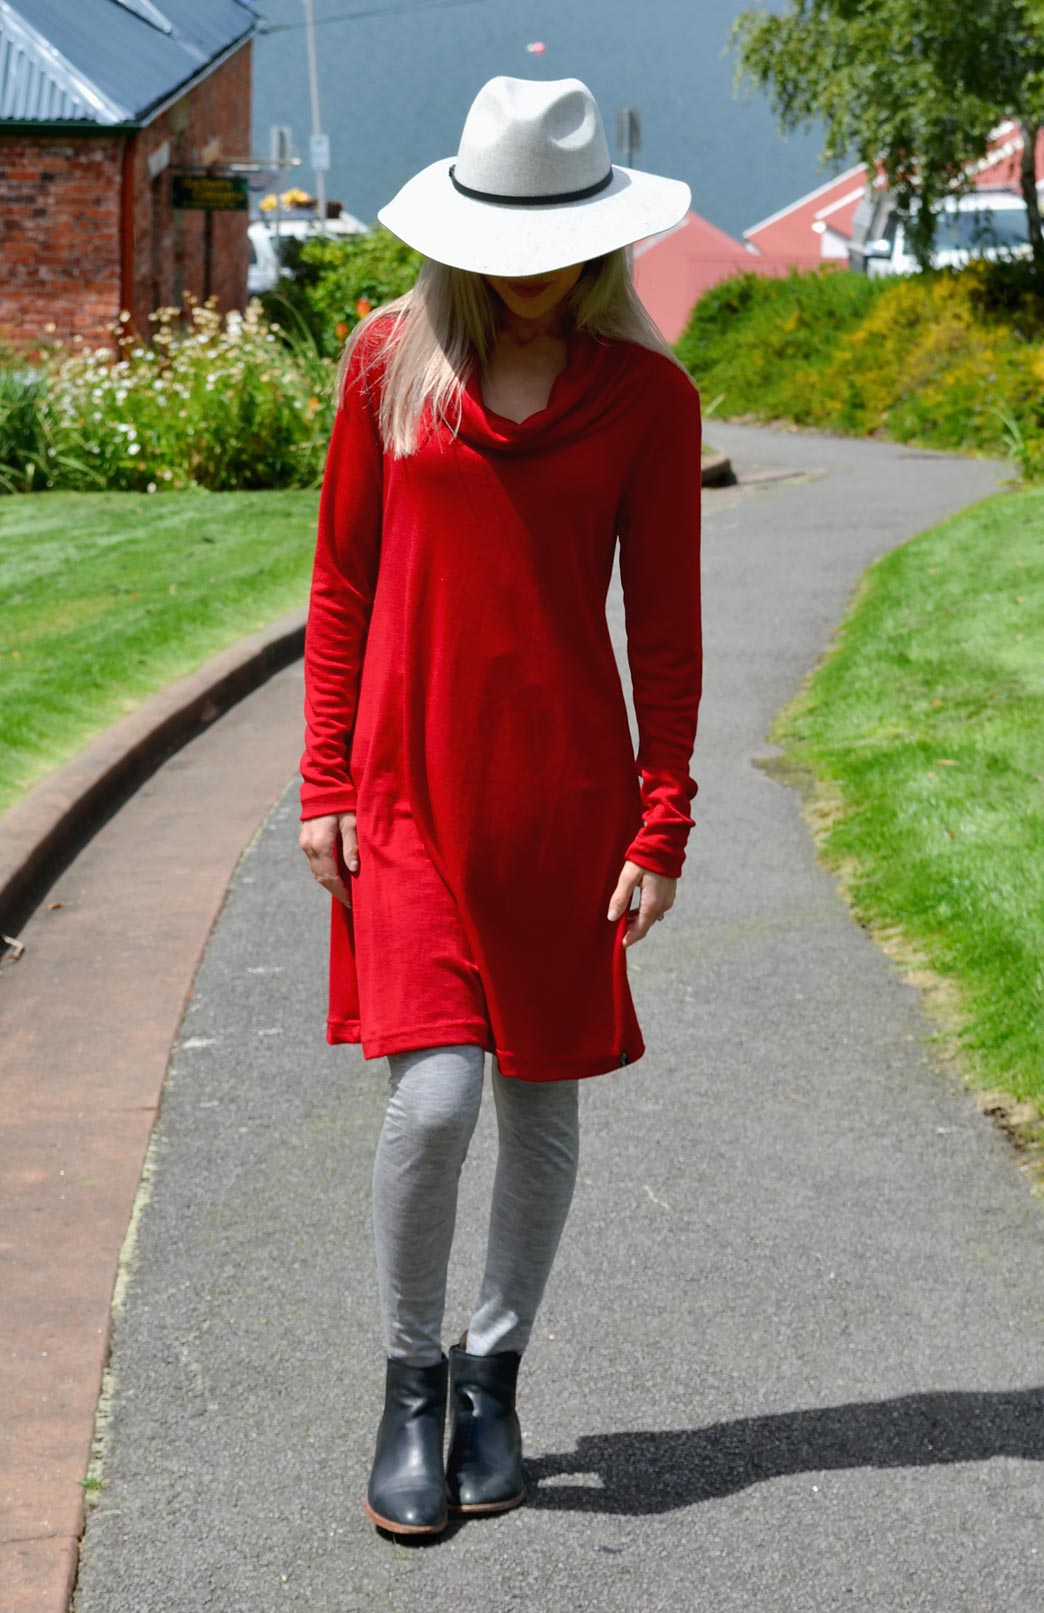 Cowl Neck Swing Dress - Women's Superfine Merino Wool Long Sleeve Cowl Neck Swing Dress - Smitten Merino Tasmania Australia